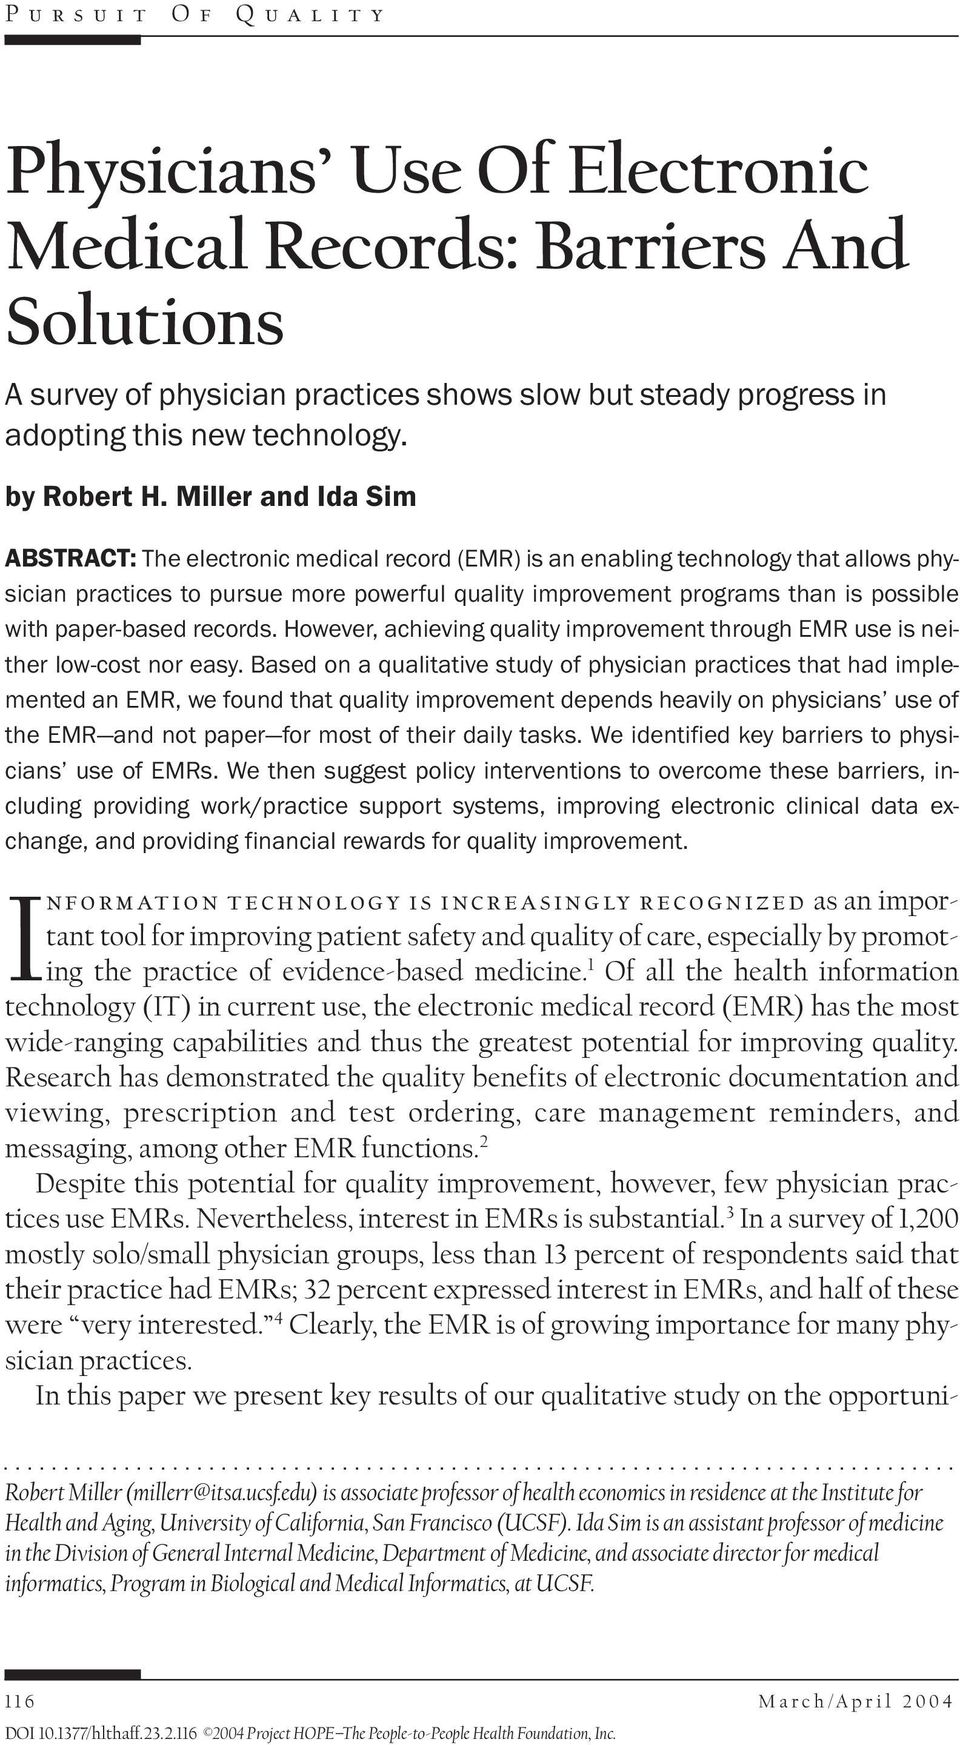 paper-based records. However, achieving quality improvement through EMR use is neither low-cost nor easy.